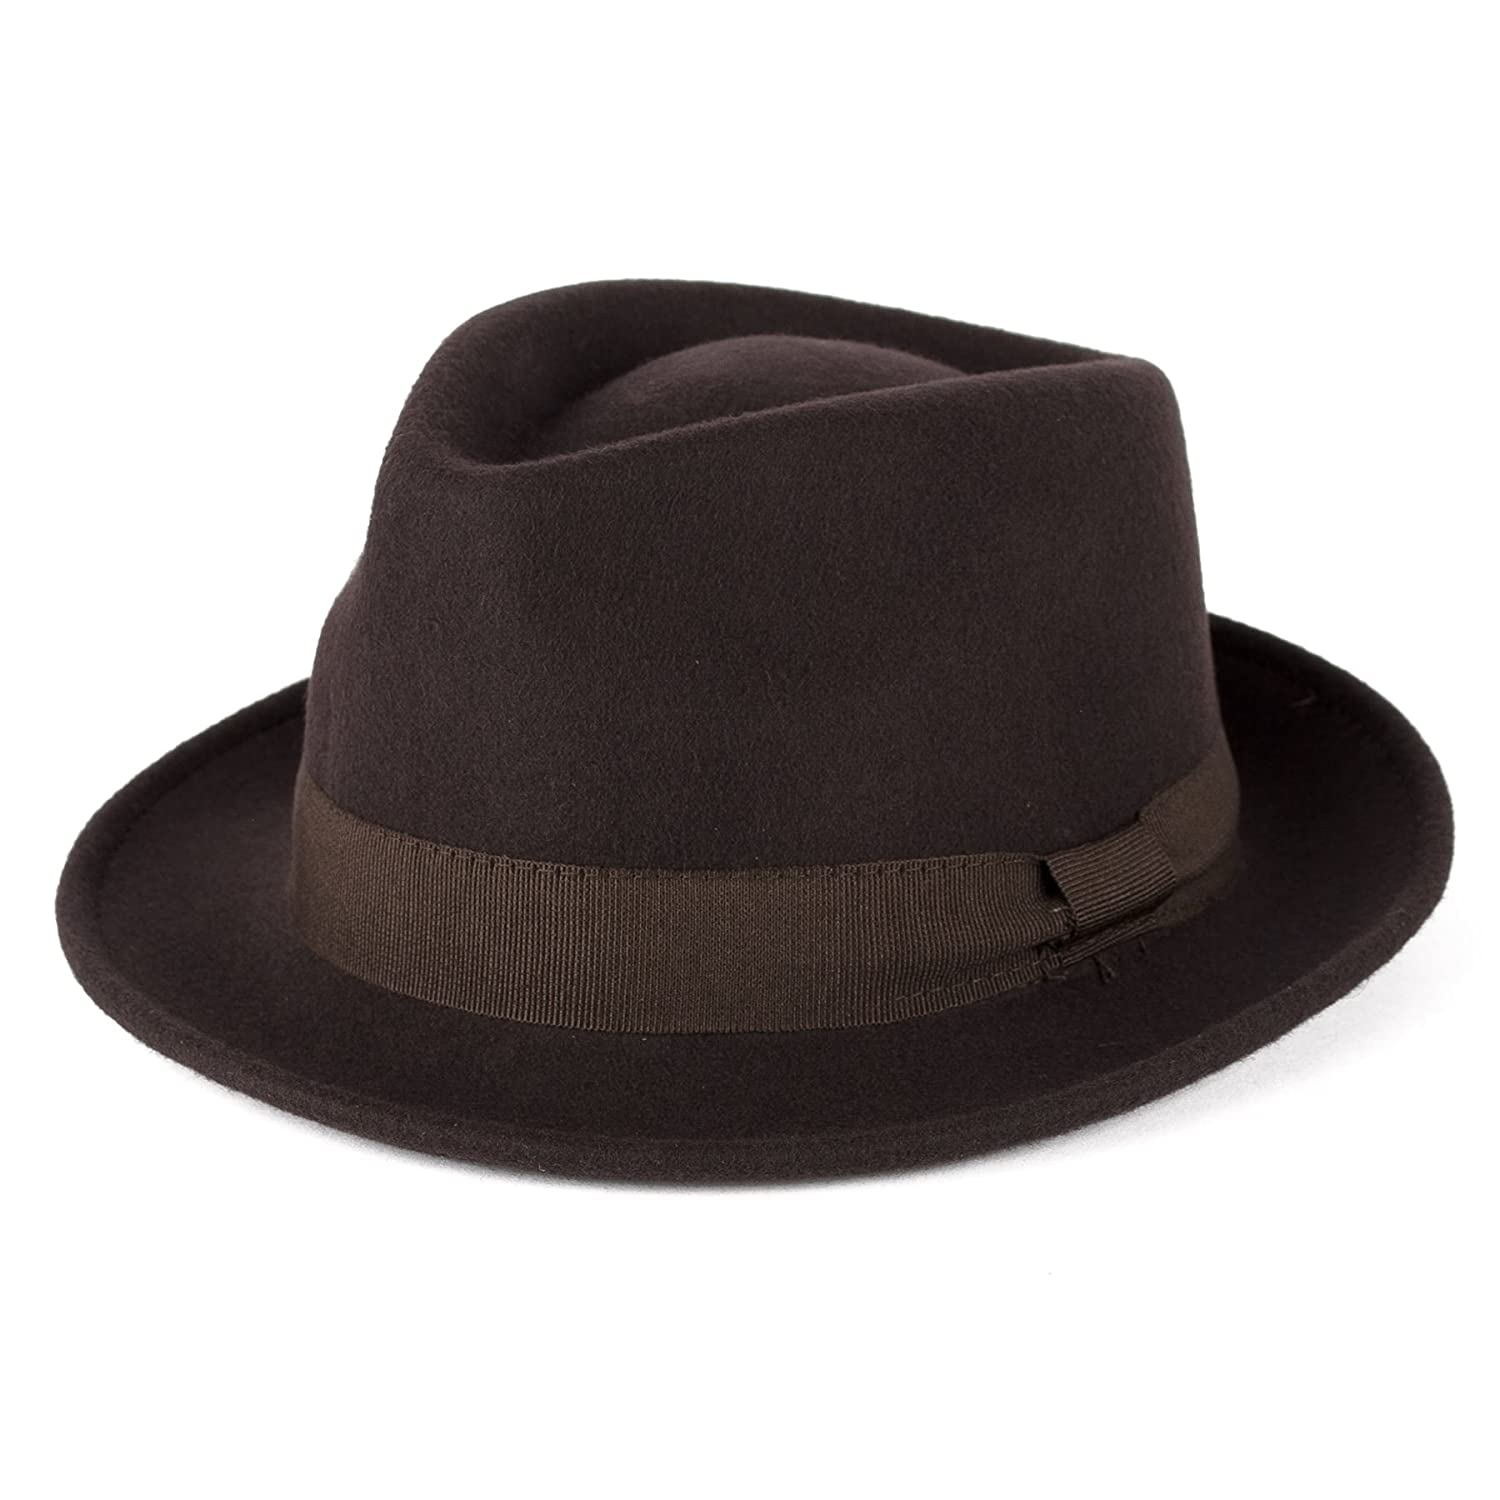 Wool Trilby Hat with Grosgrain Band Handmade in Italy